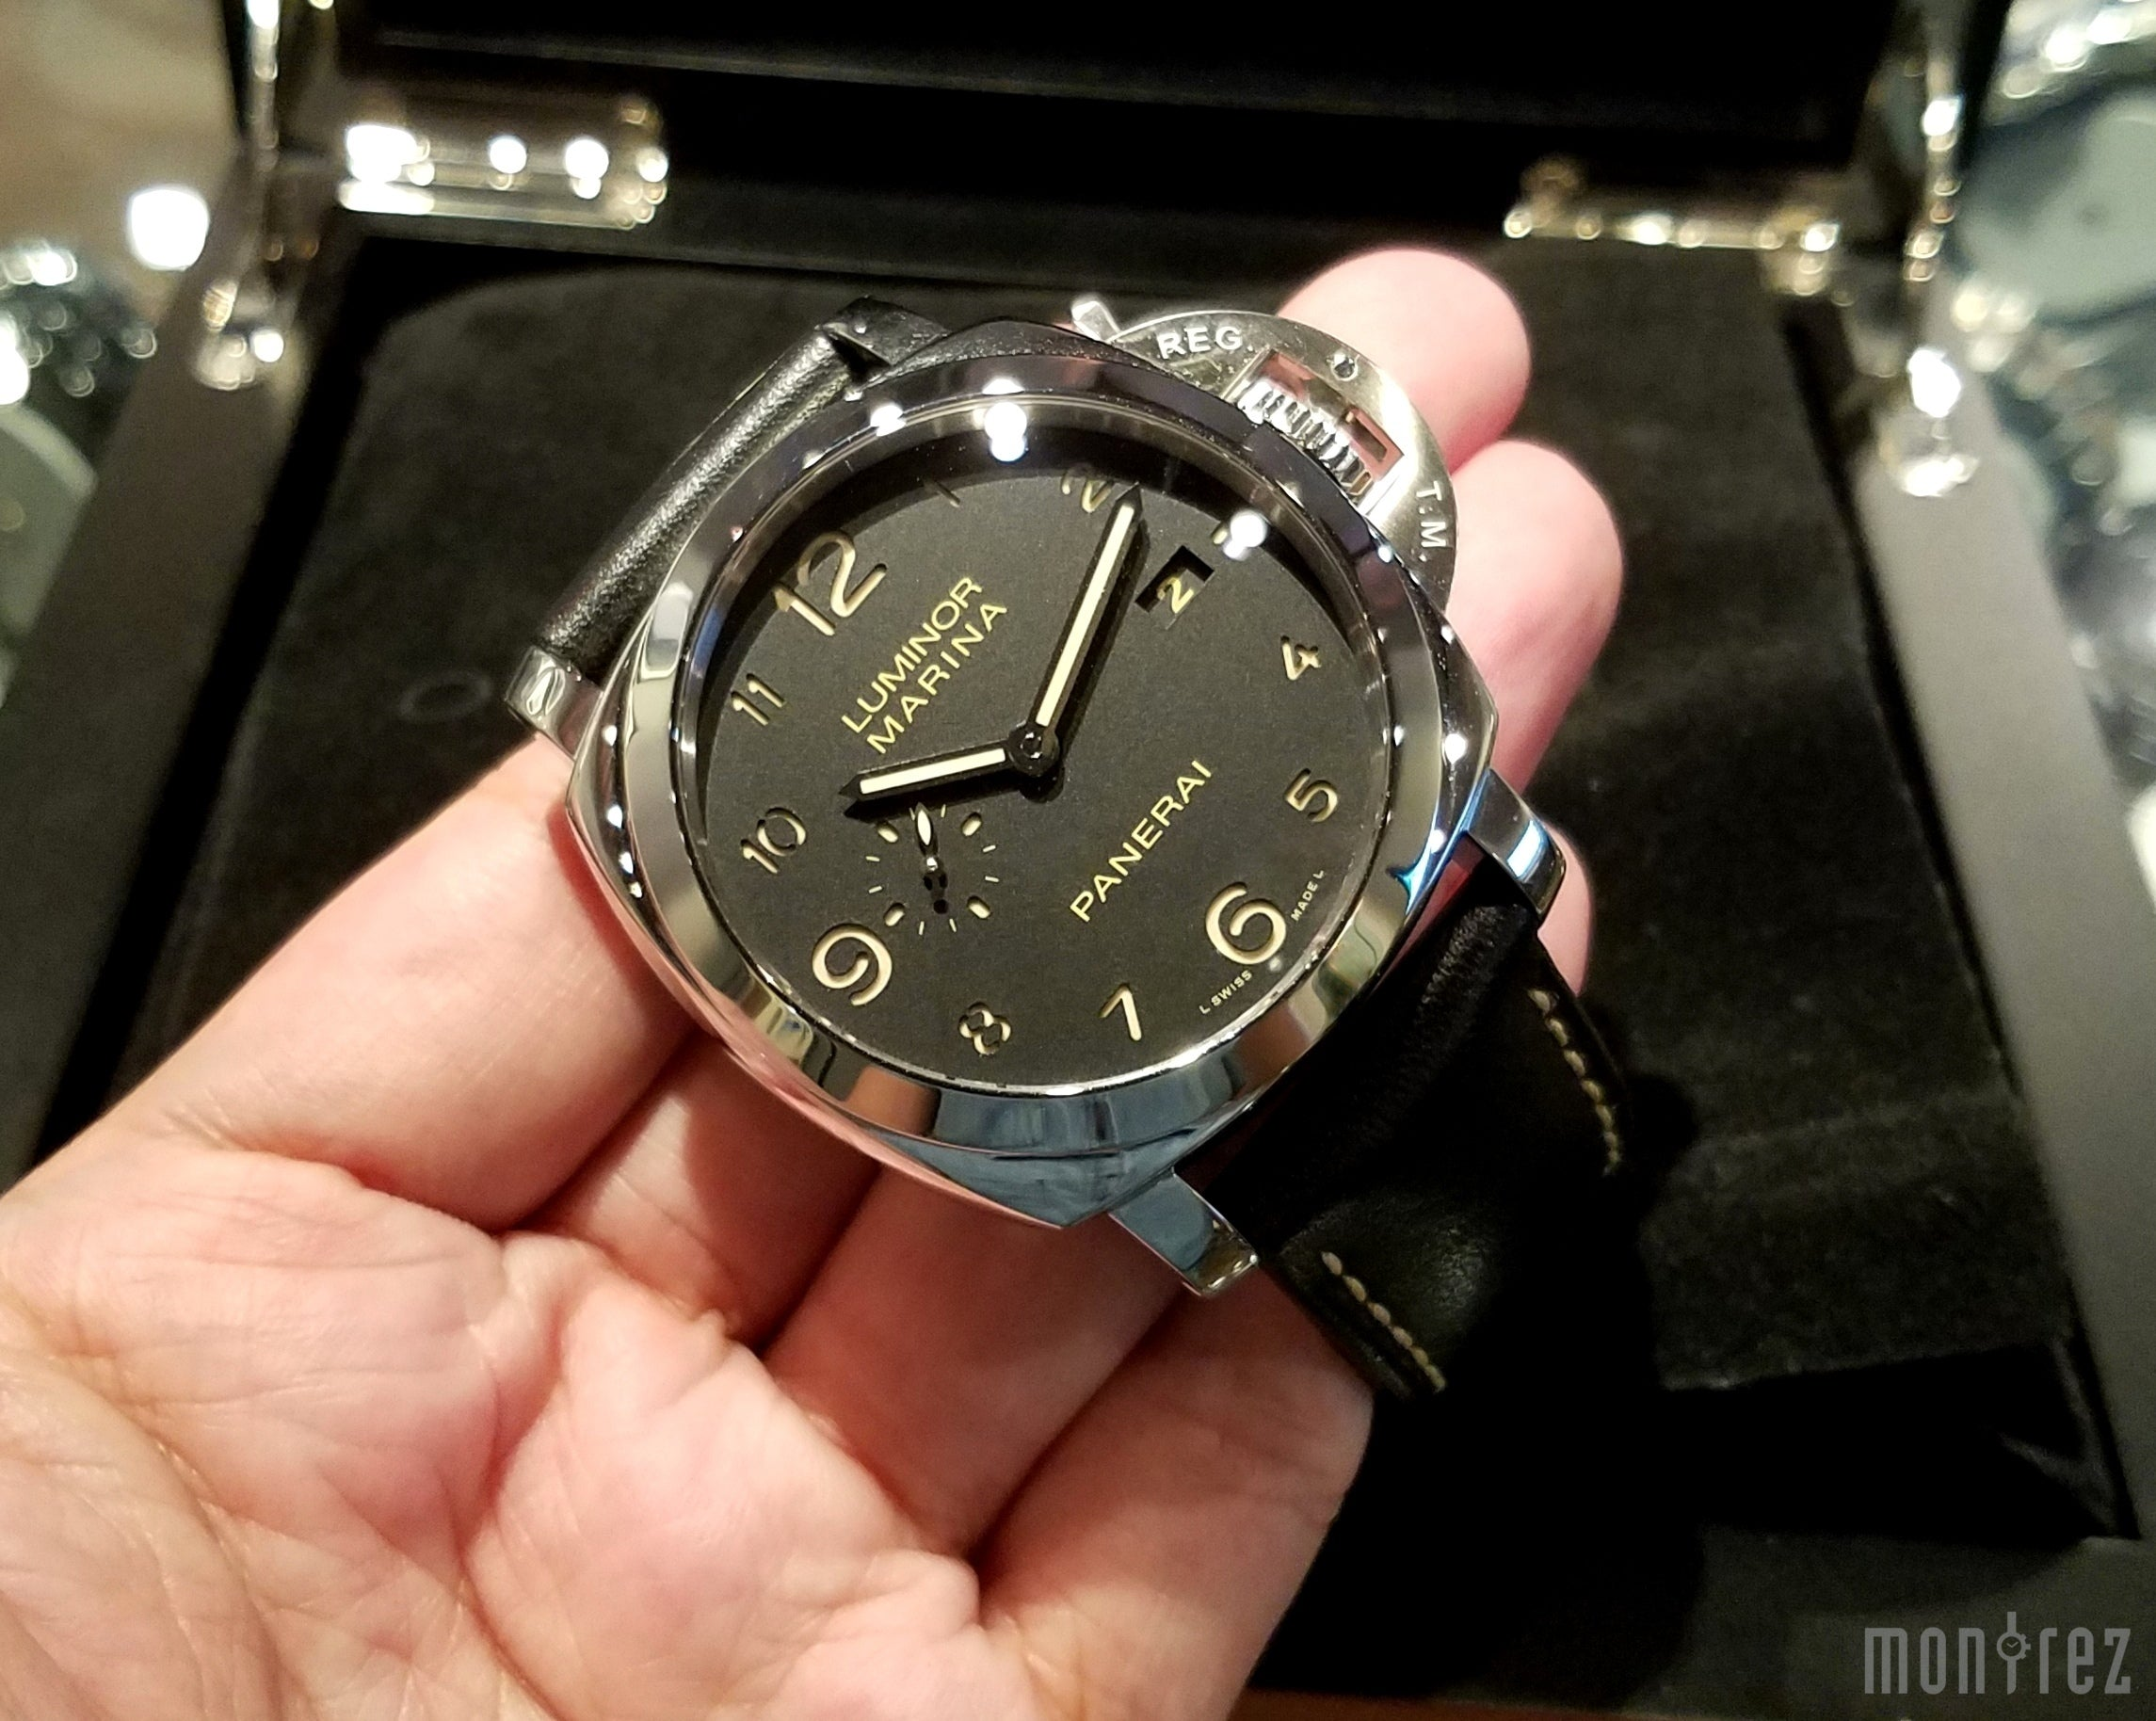 Panerai Luminor Marina 1950 3 Days Automatic Acciaio 44mm PAM00359 (Out of Production)